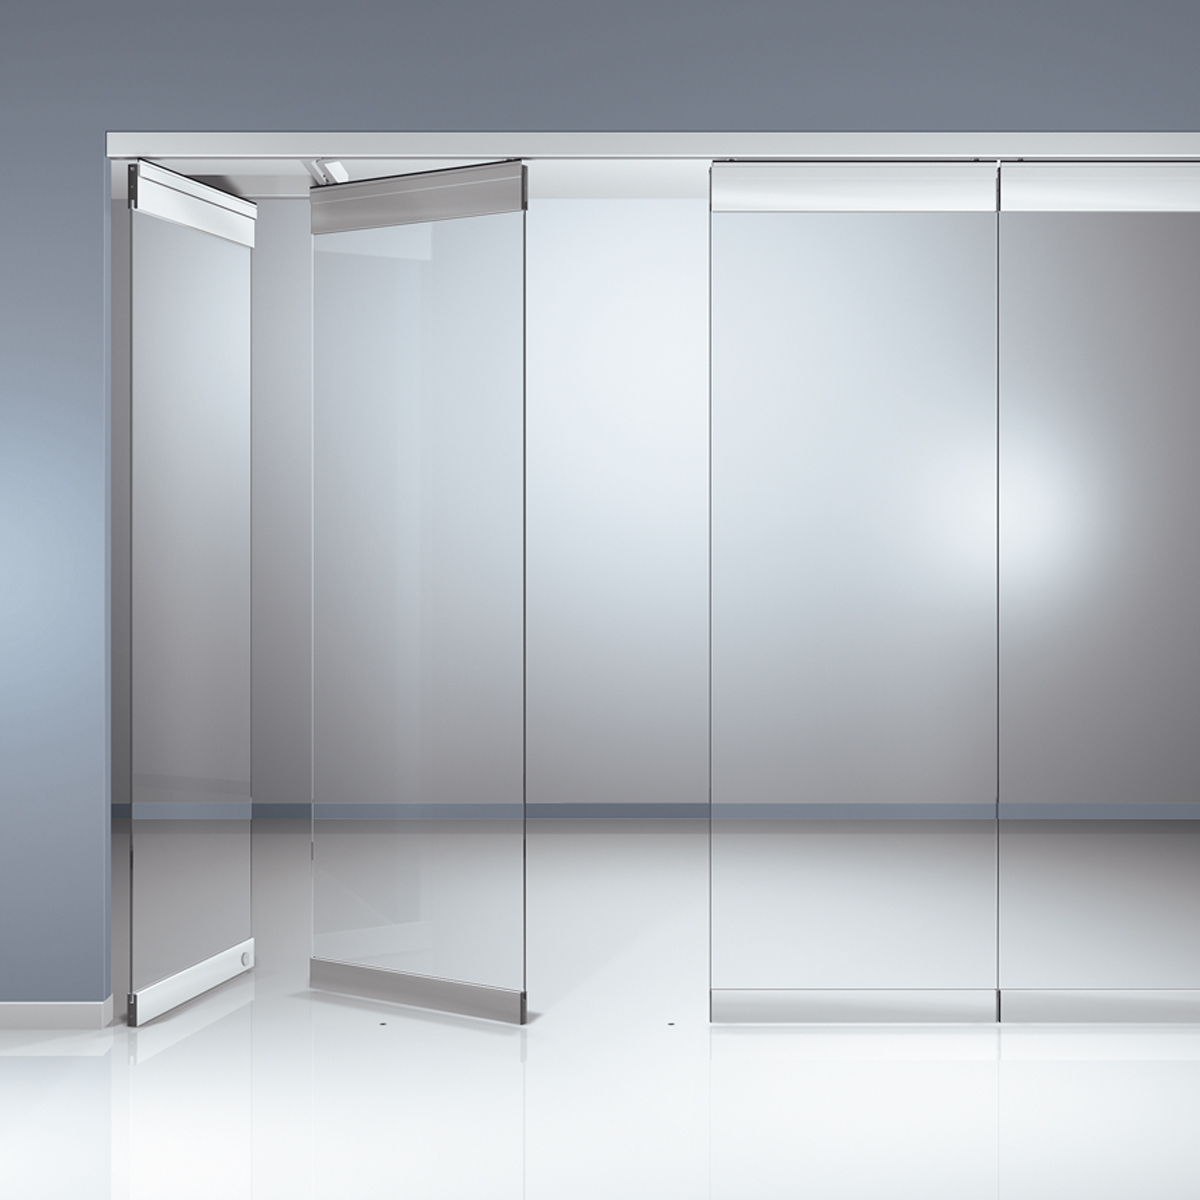 Glass partitions all purpose glazing for Sliding glass wall systems